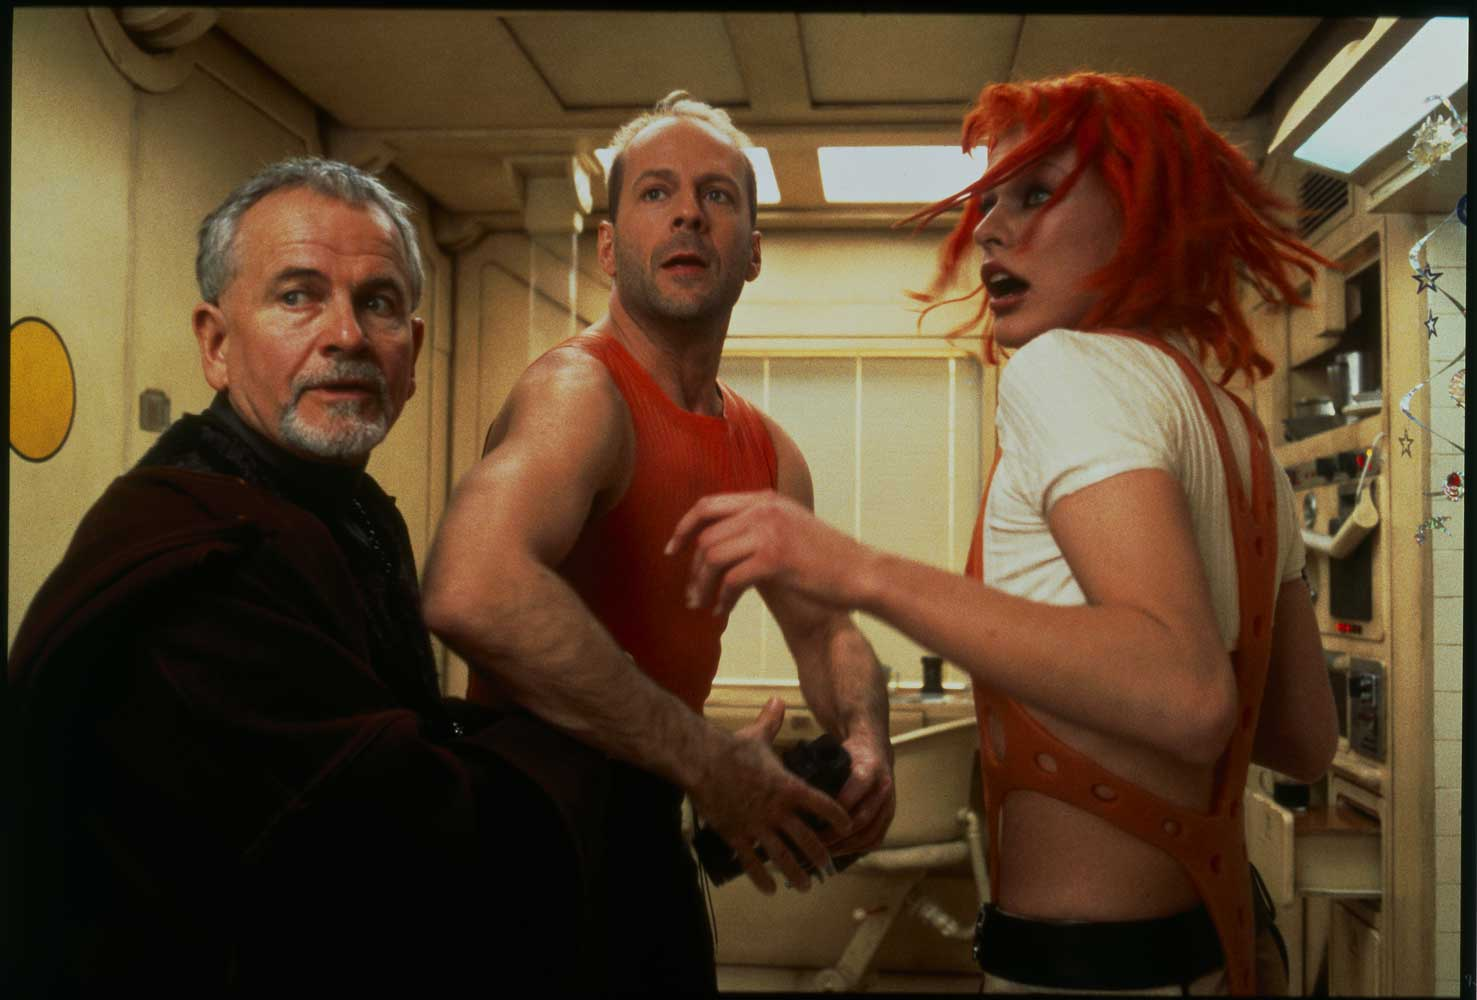 Ian Holm, Bruce Willis and Milla Jovovich in The Fifth Element (1997)